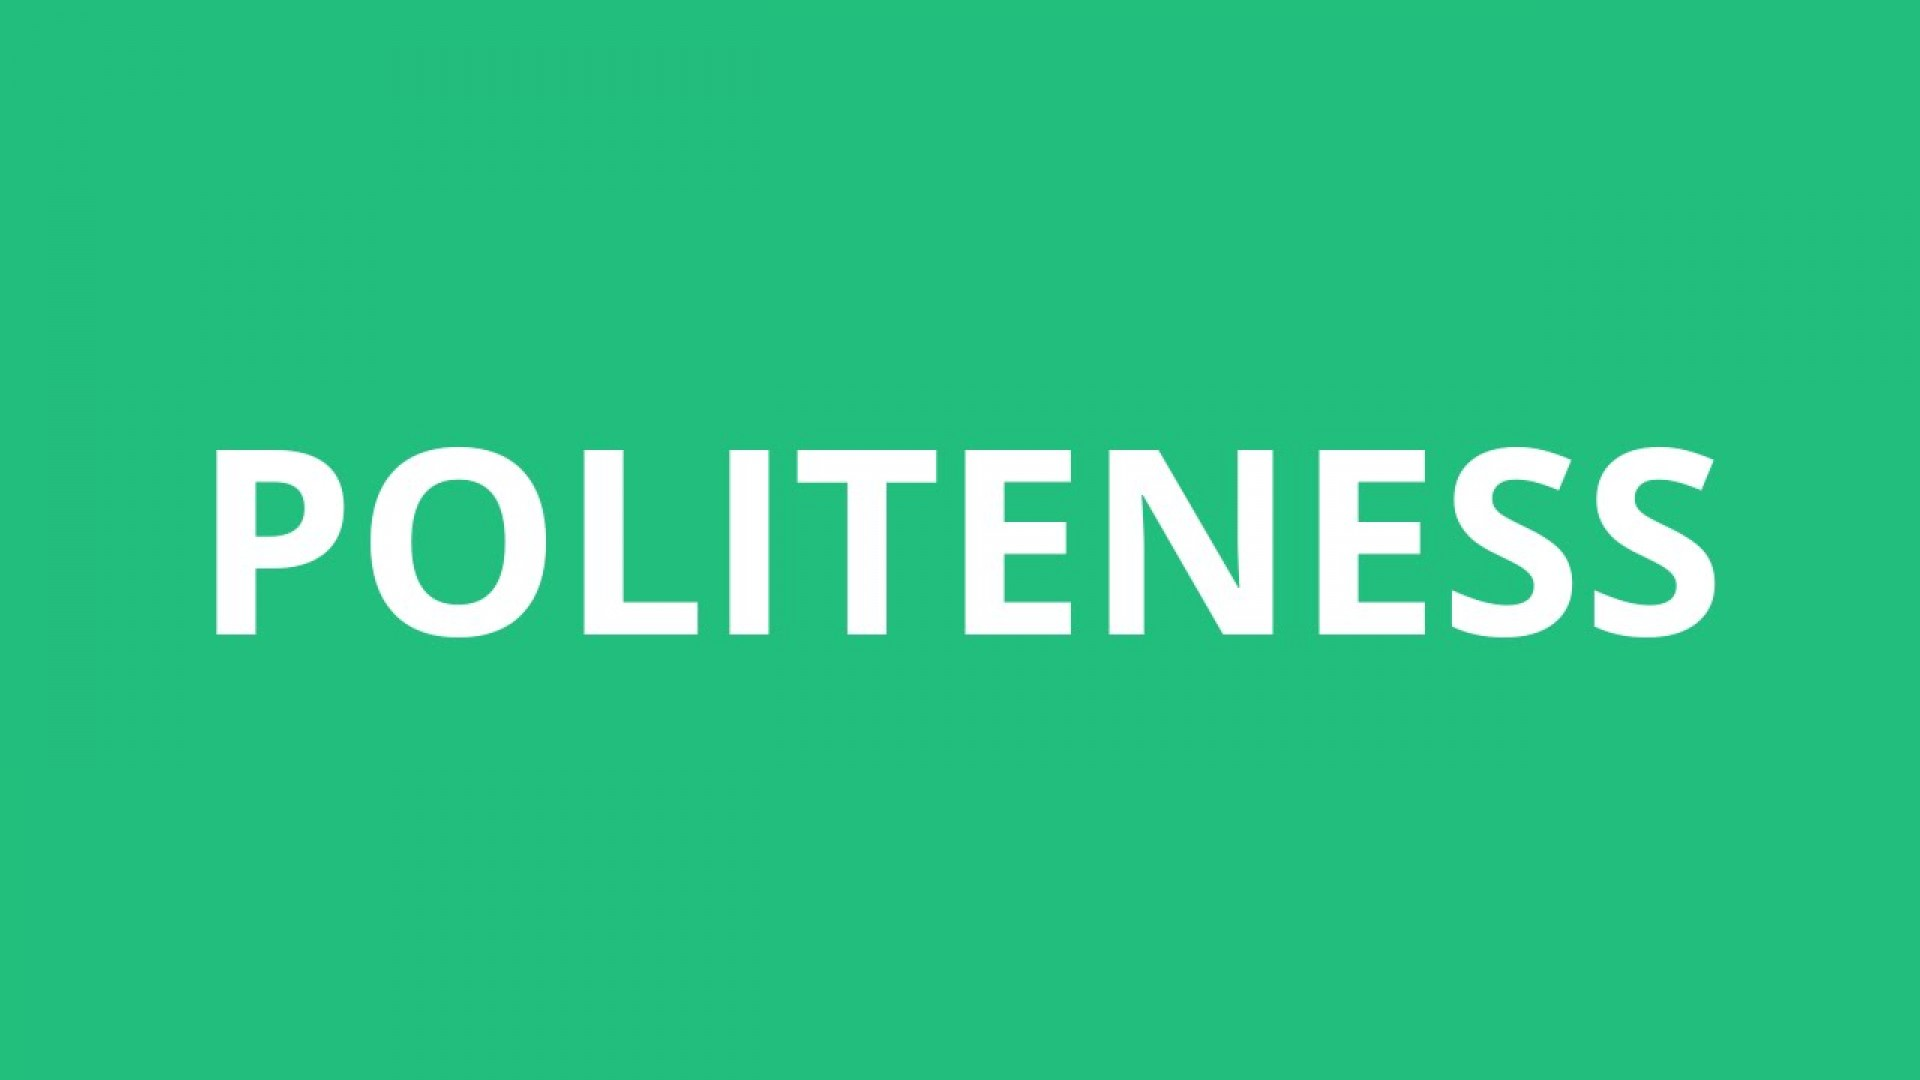 002 Essay Example On Politeness In Students Dreaded 1920